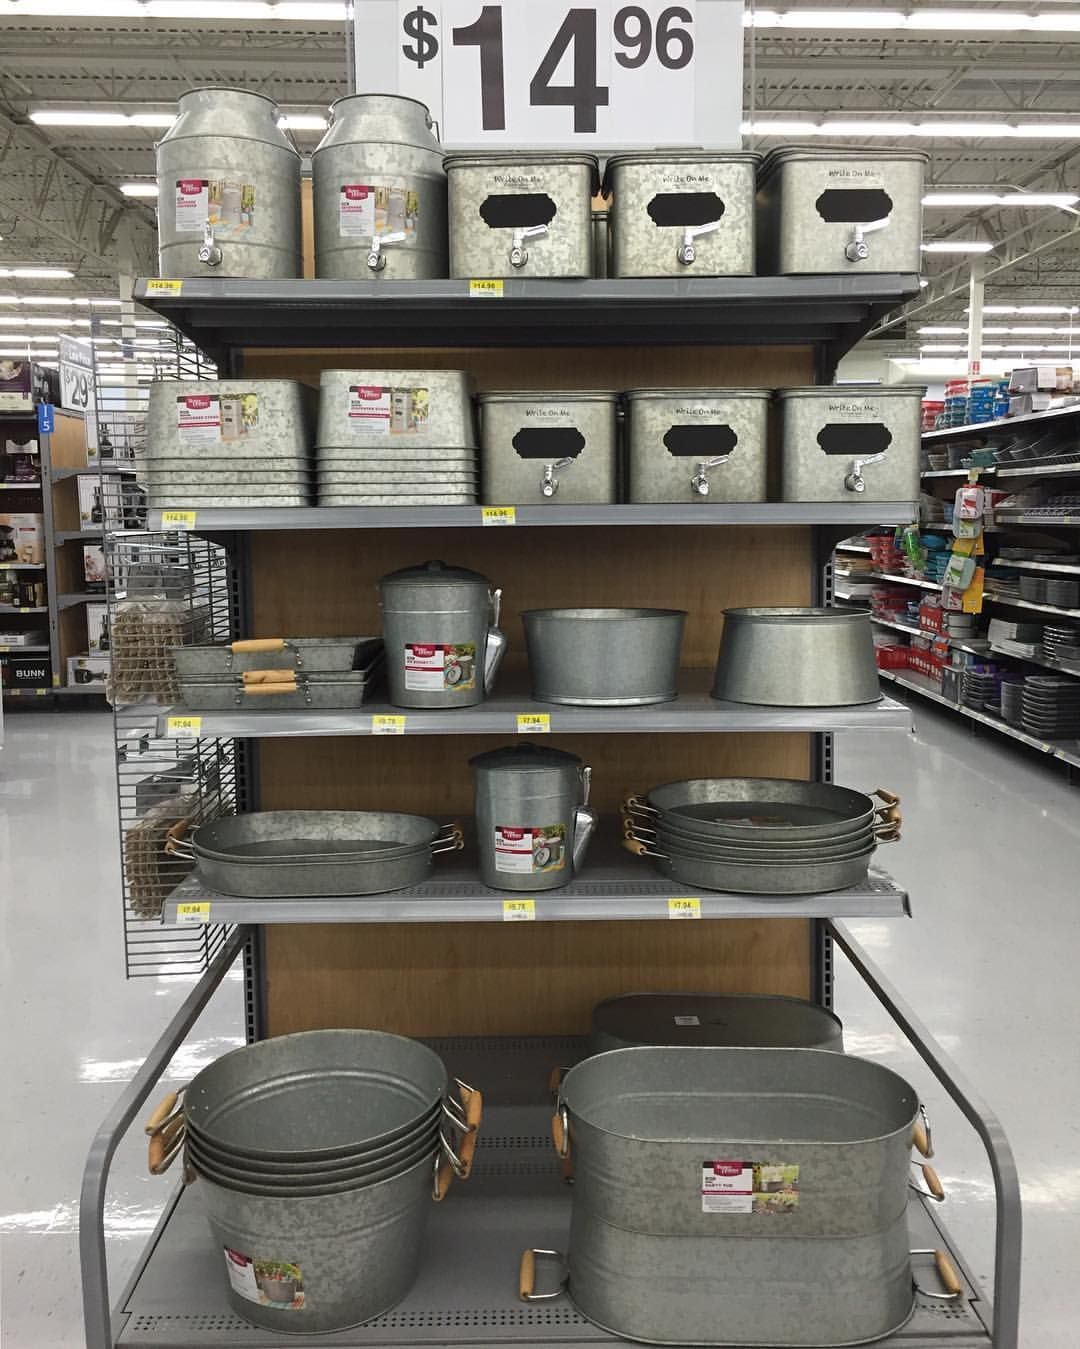 Kitchen Accessories Walmart: For All Things Galvanized Go To Wal-Mart And Check Out